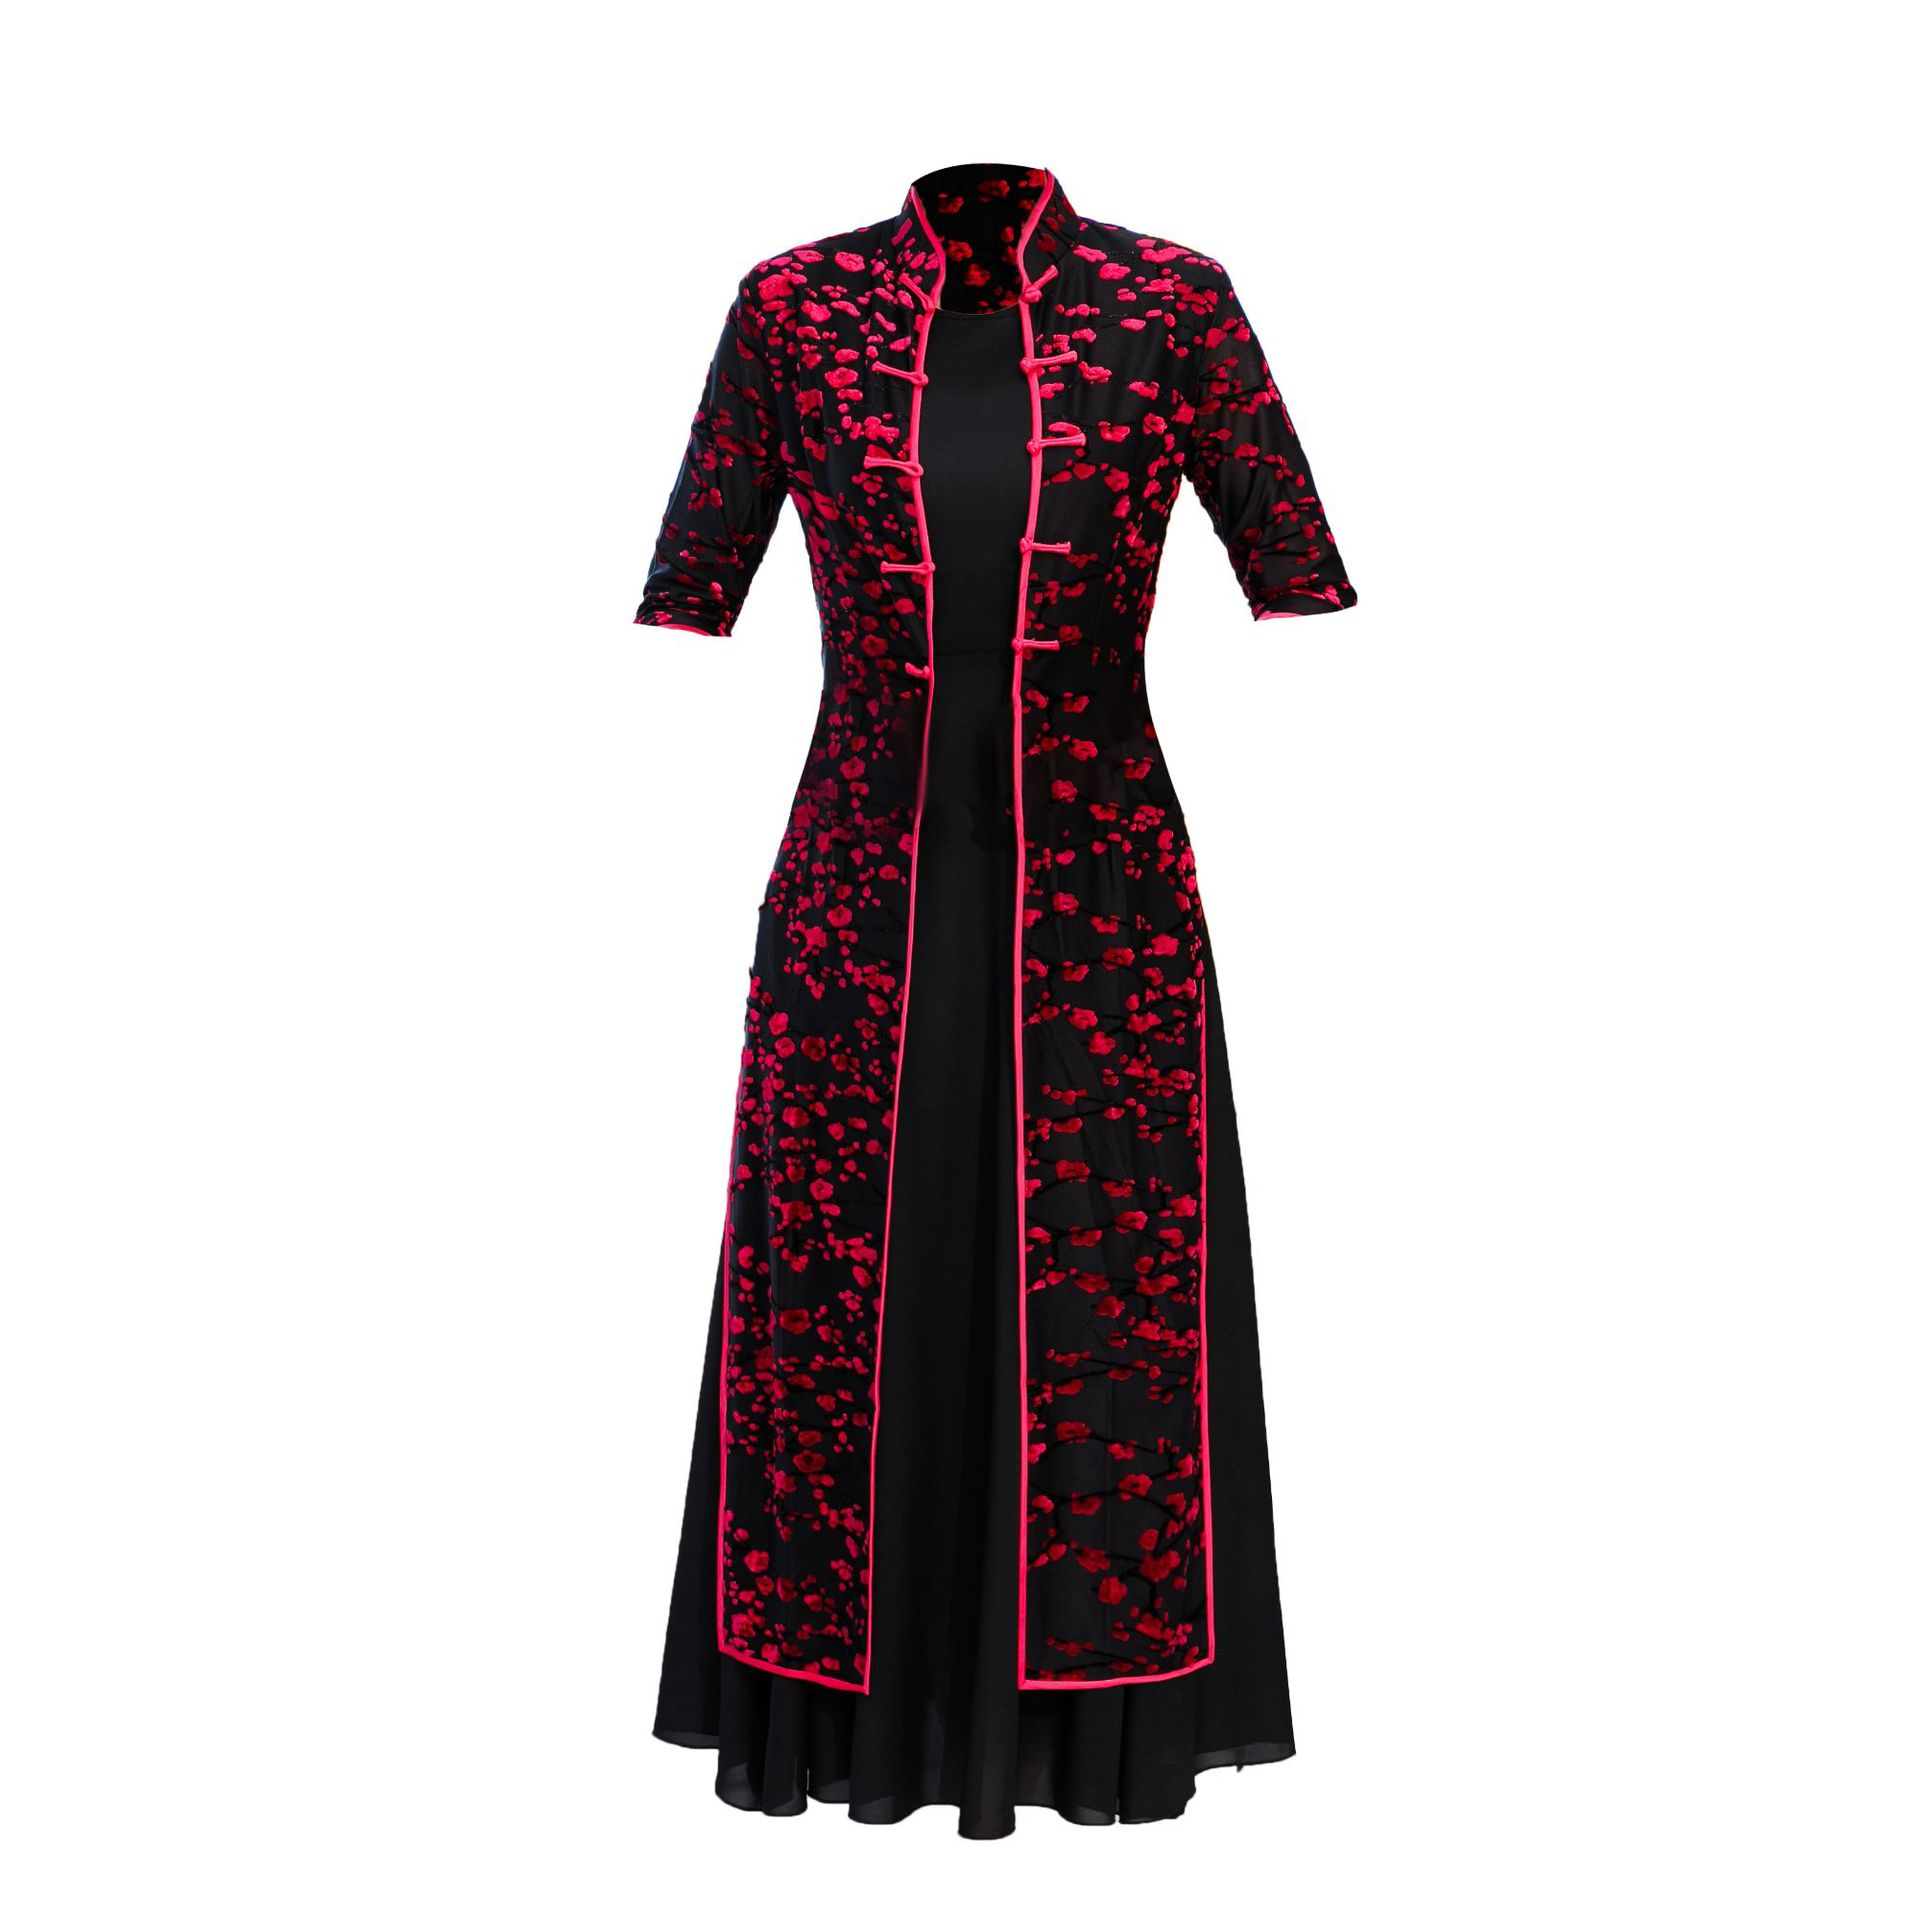 High Quality National Style Twinset Ladies' Vietnam Ao Dai Dress Velour Long Cheong sam Casual Dress Party Dress Plus Size M 4XL-in Dresses from Women's Clothing    1